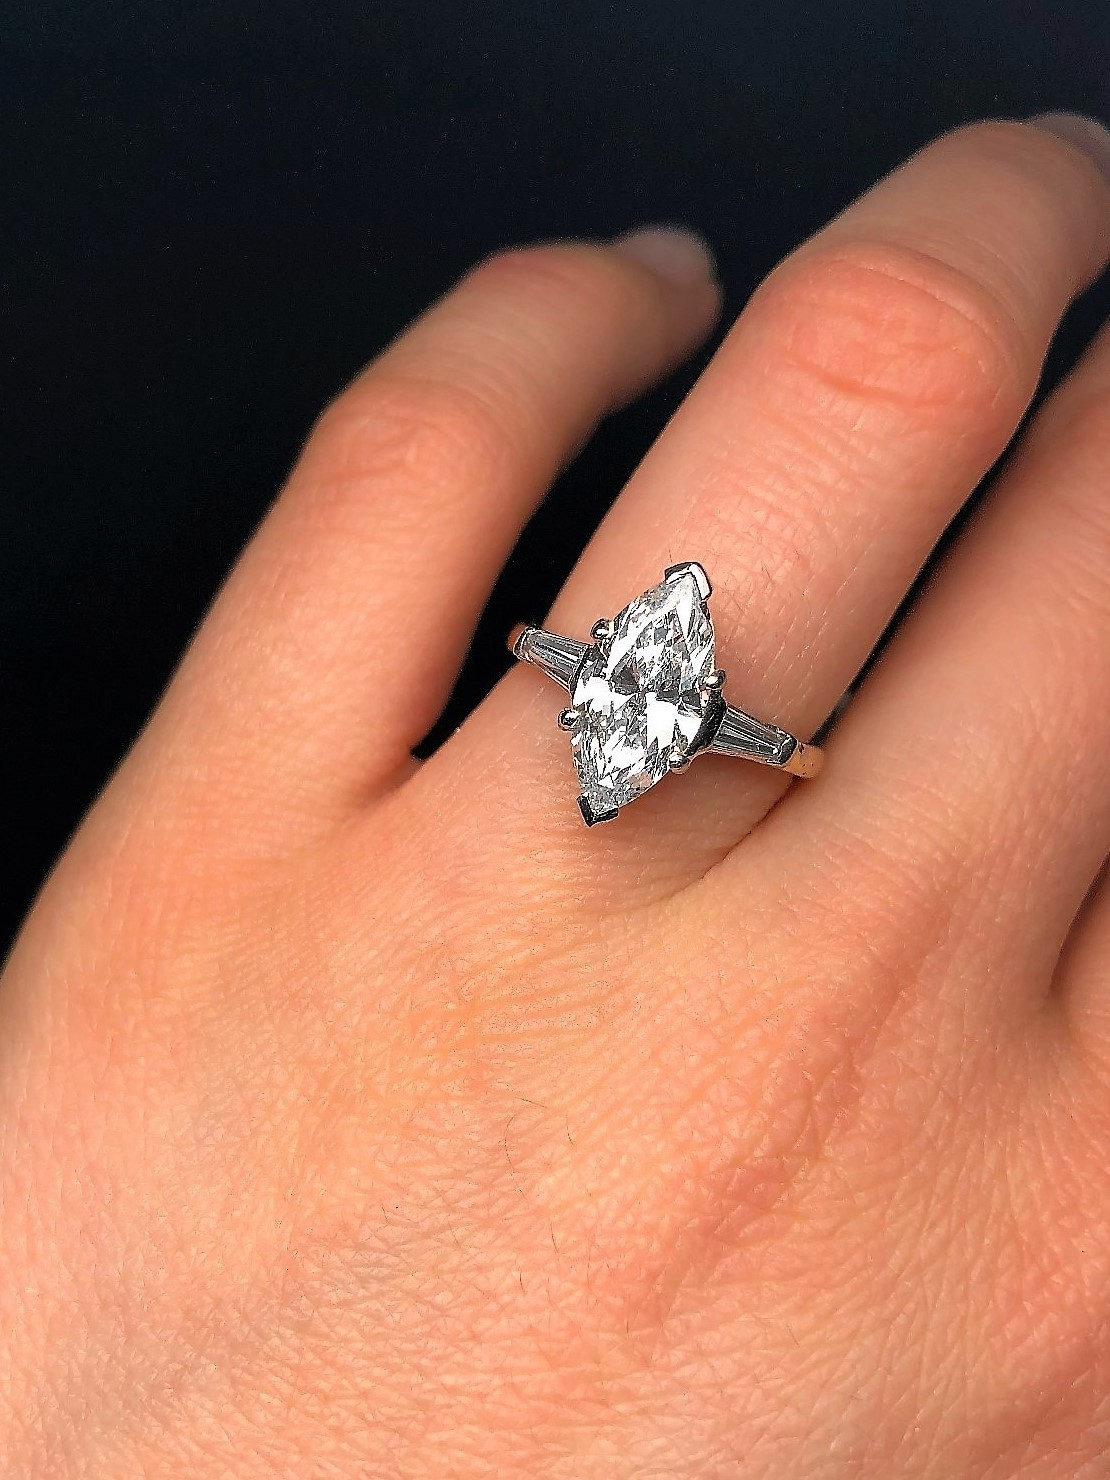 Beautiful GIA certified marquise cut diamond engagement ring